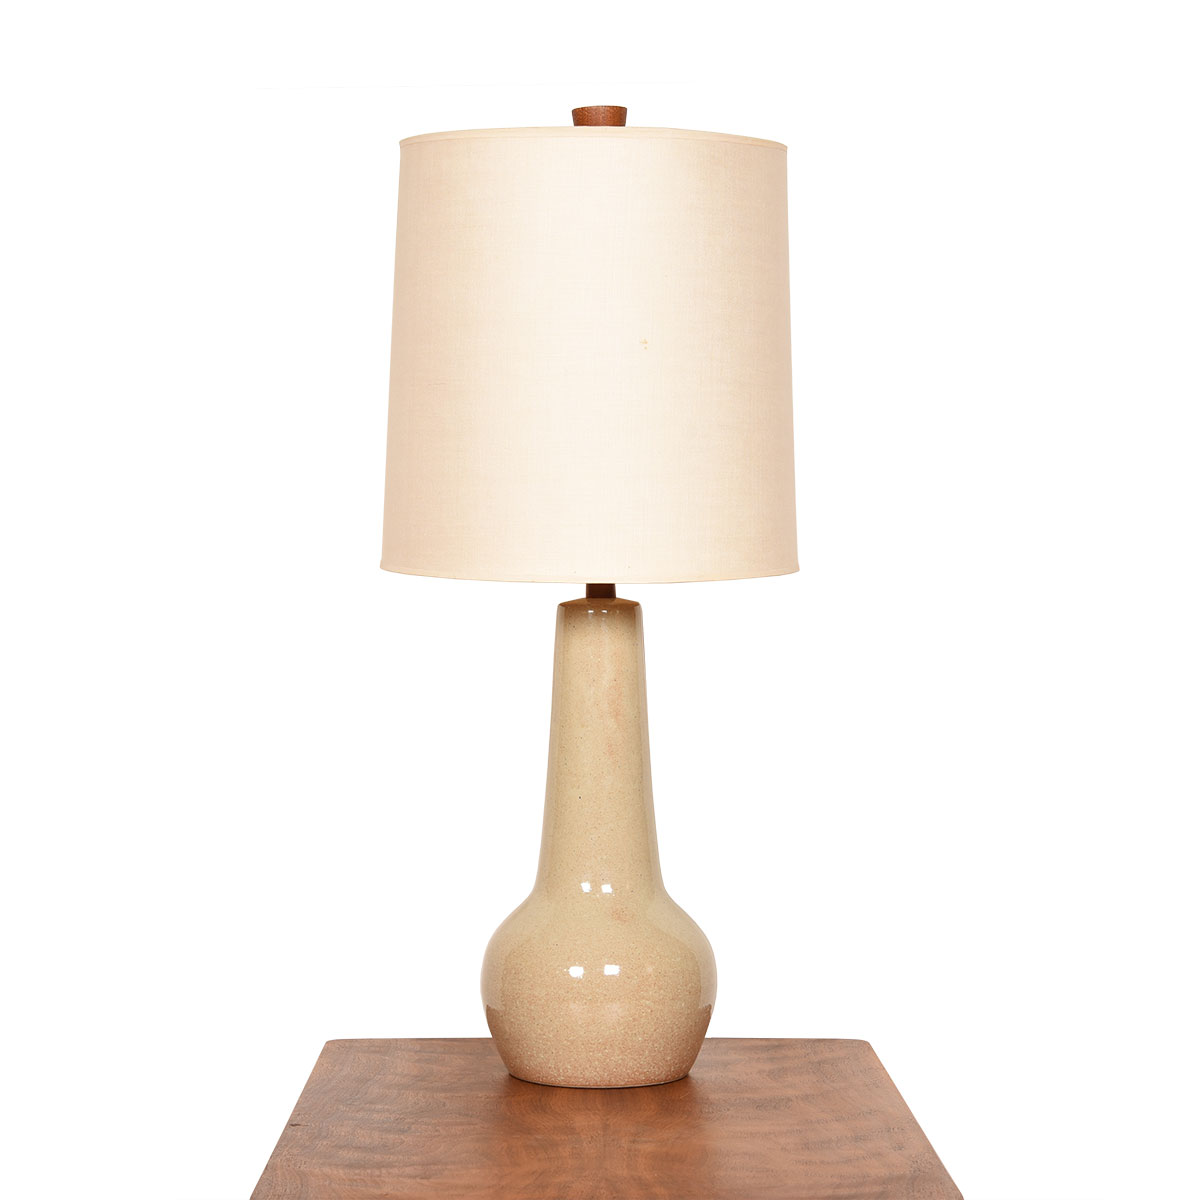 Martz Tall & Sculptural Off-White Ceramic Lamp